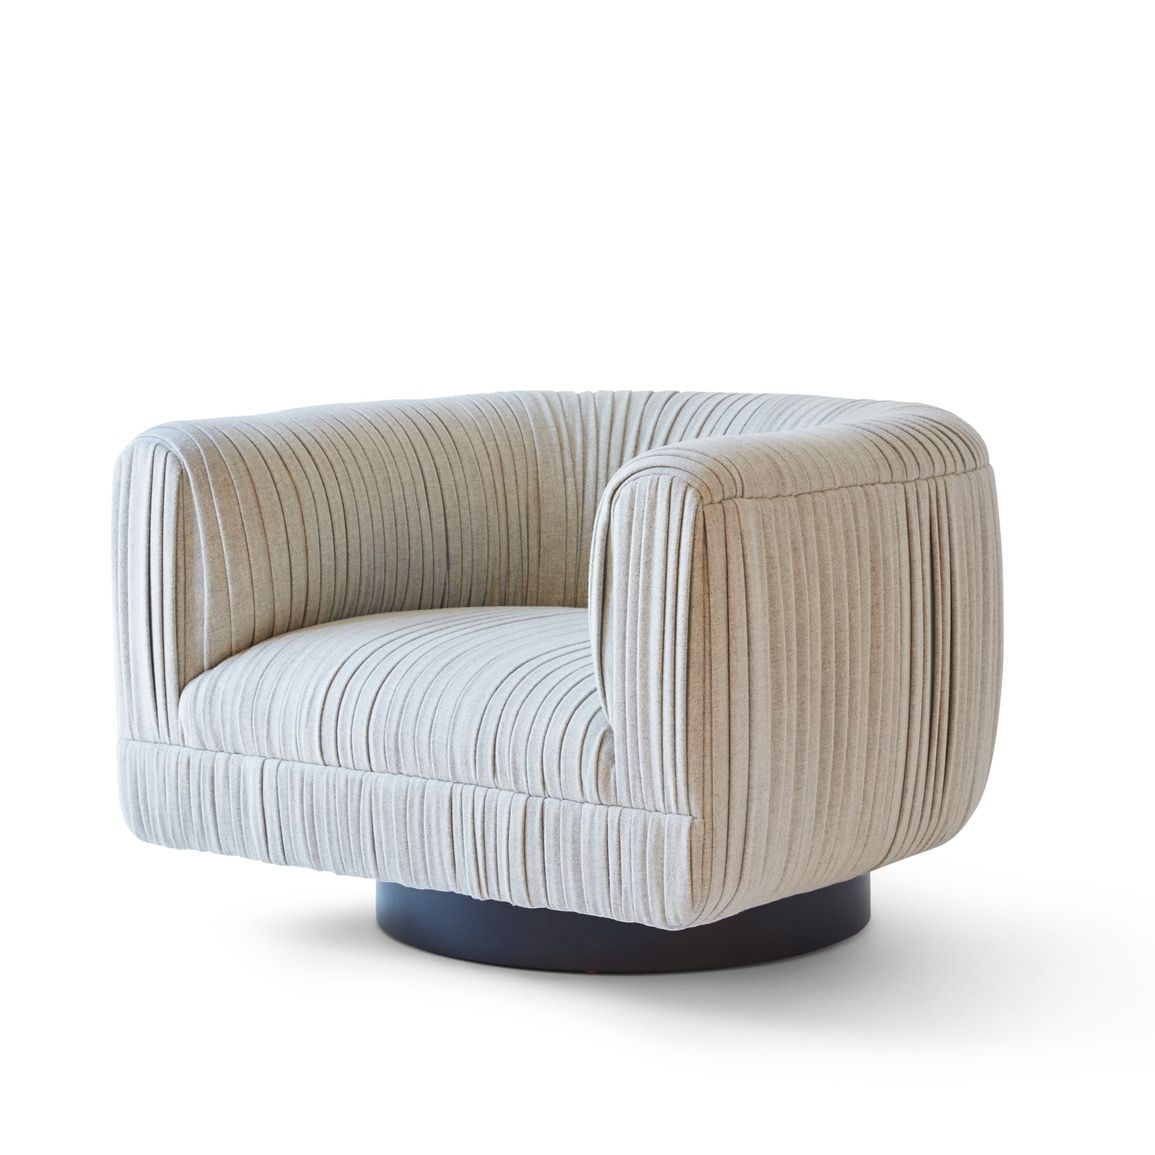 Captivating Buy MAIA RUCHED SWIVEL ARMCHAIR By Kimberly Denman   Made To Order Designer  Furniture